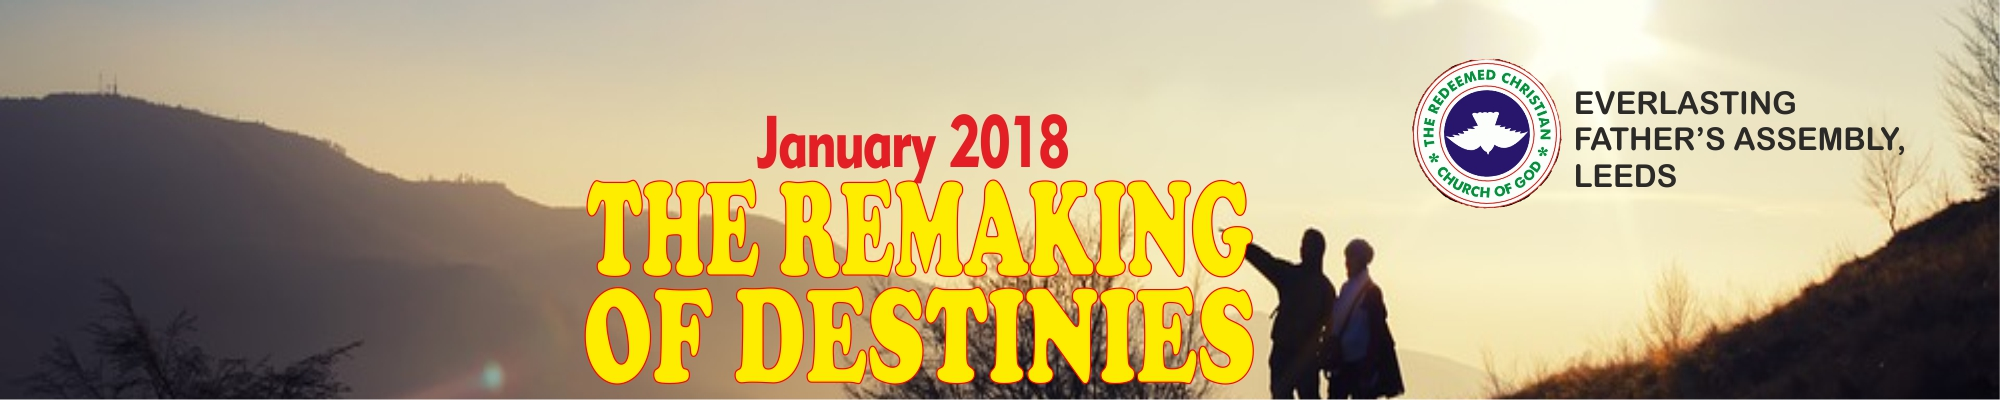 January 2018 Theme – The Remaking of Destinies